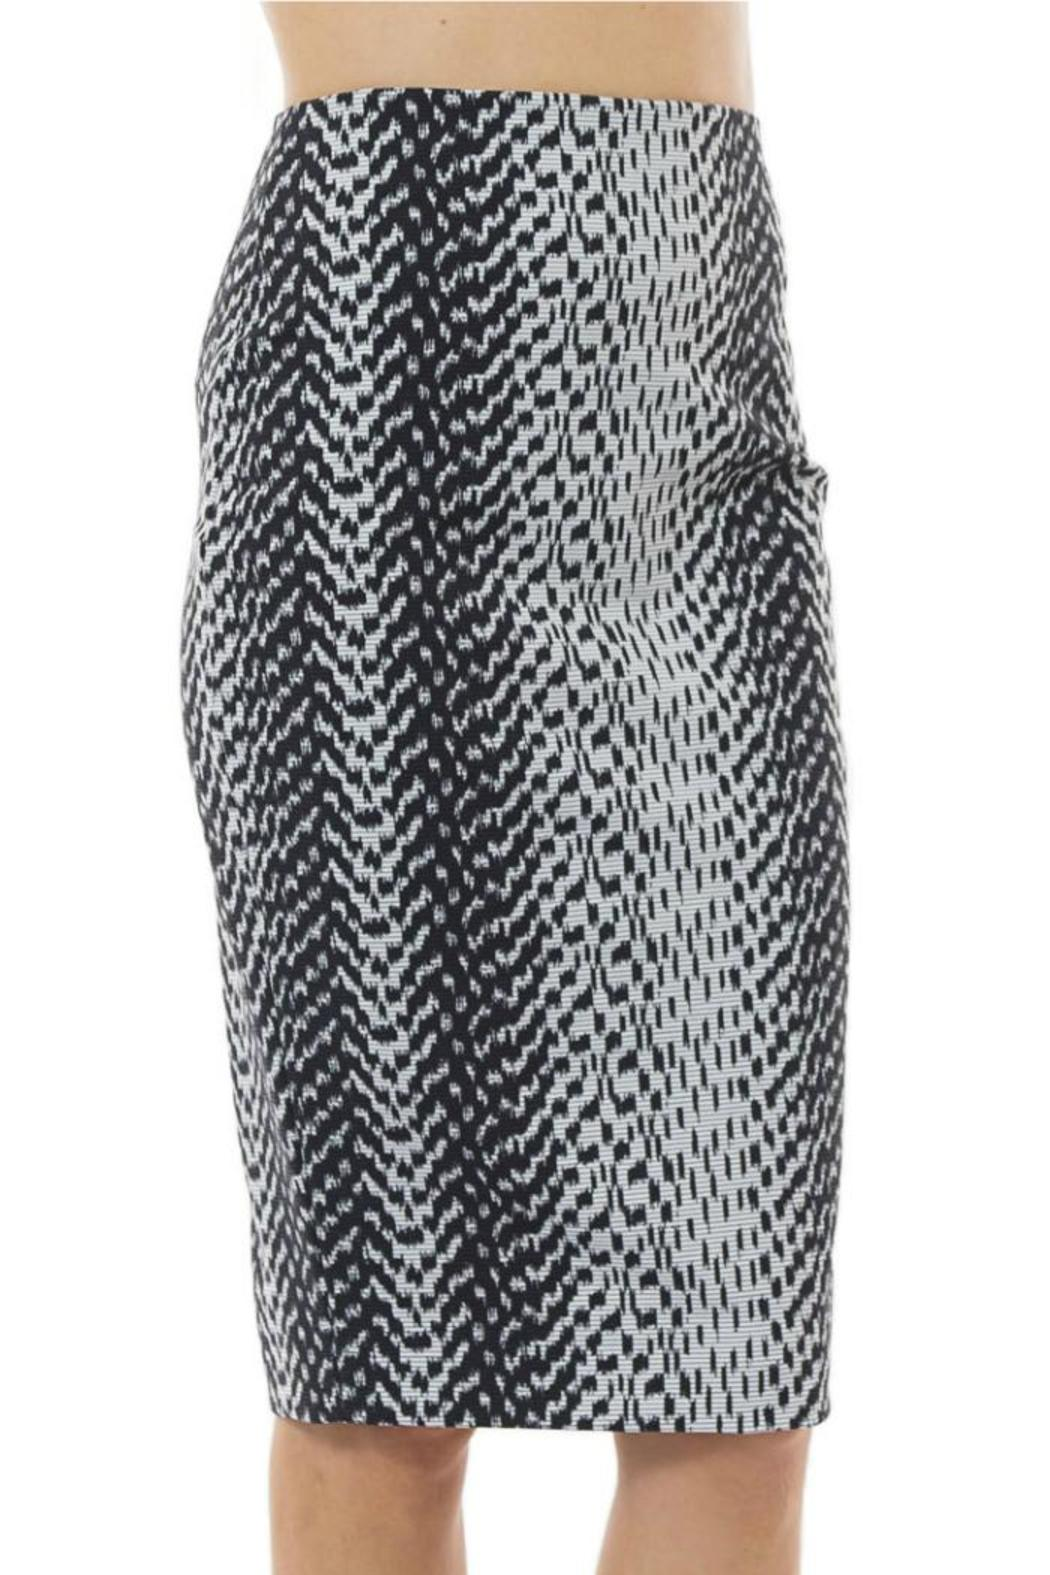 Elizabeth & James Ikat Aisling Skirt - Side Cropped Image